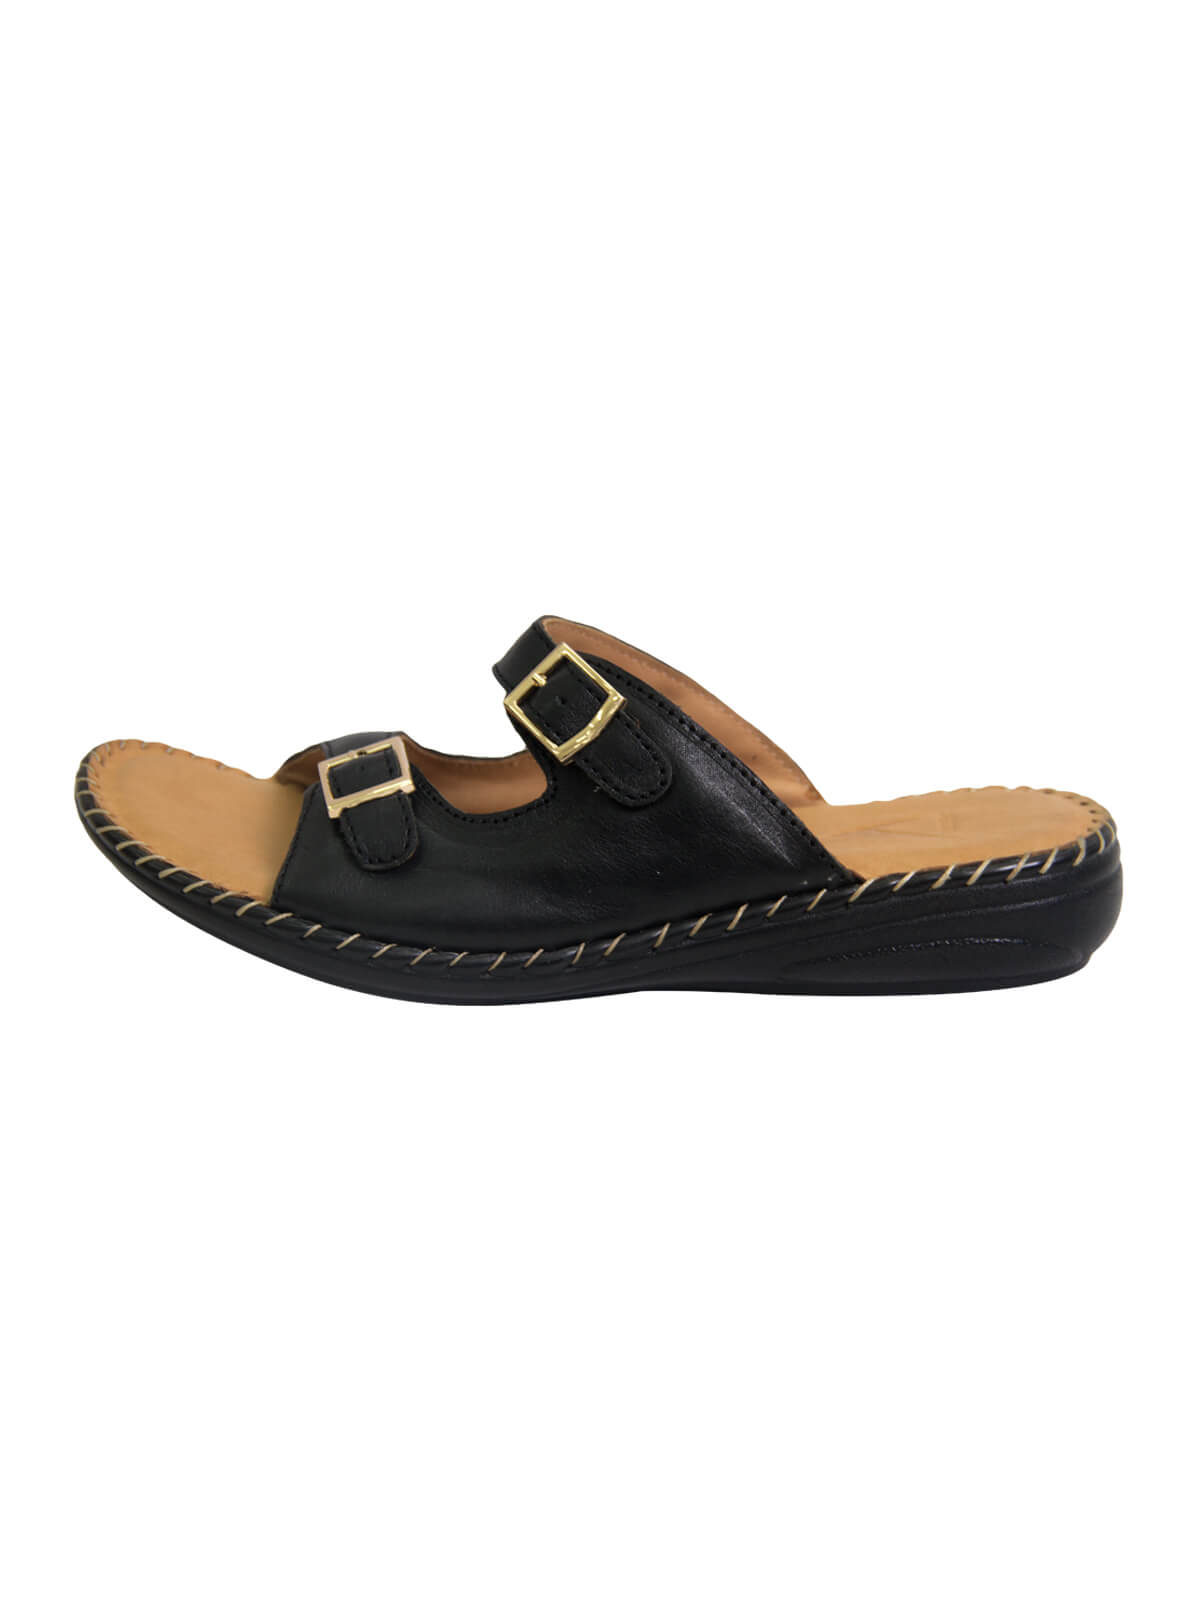 Black Ladies Sandal